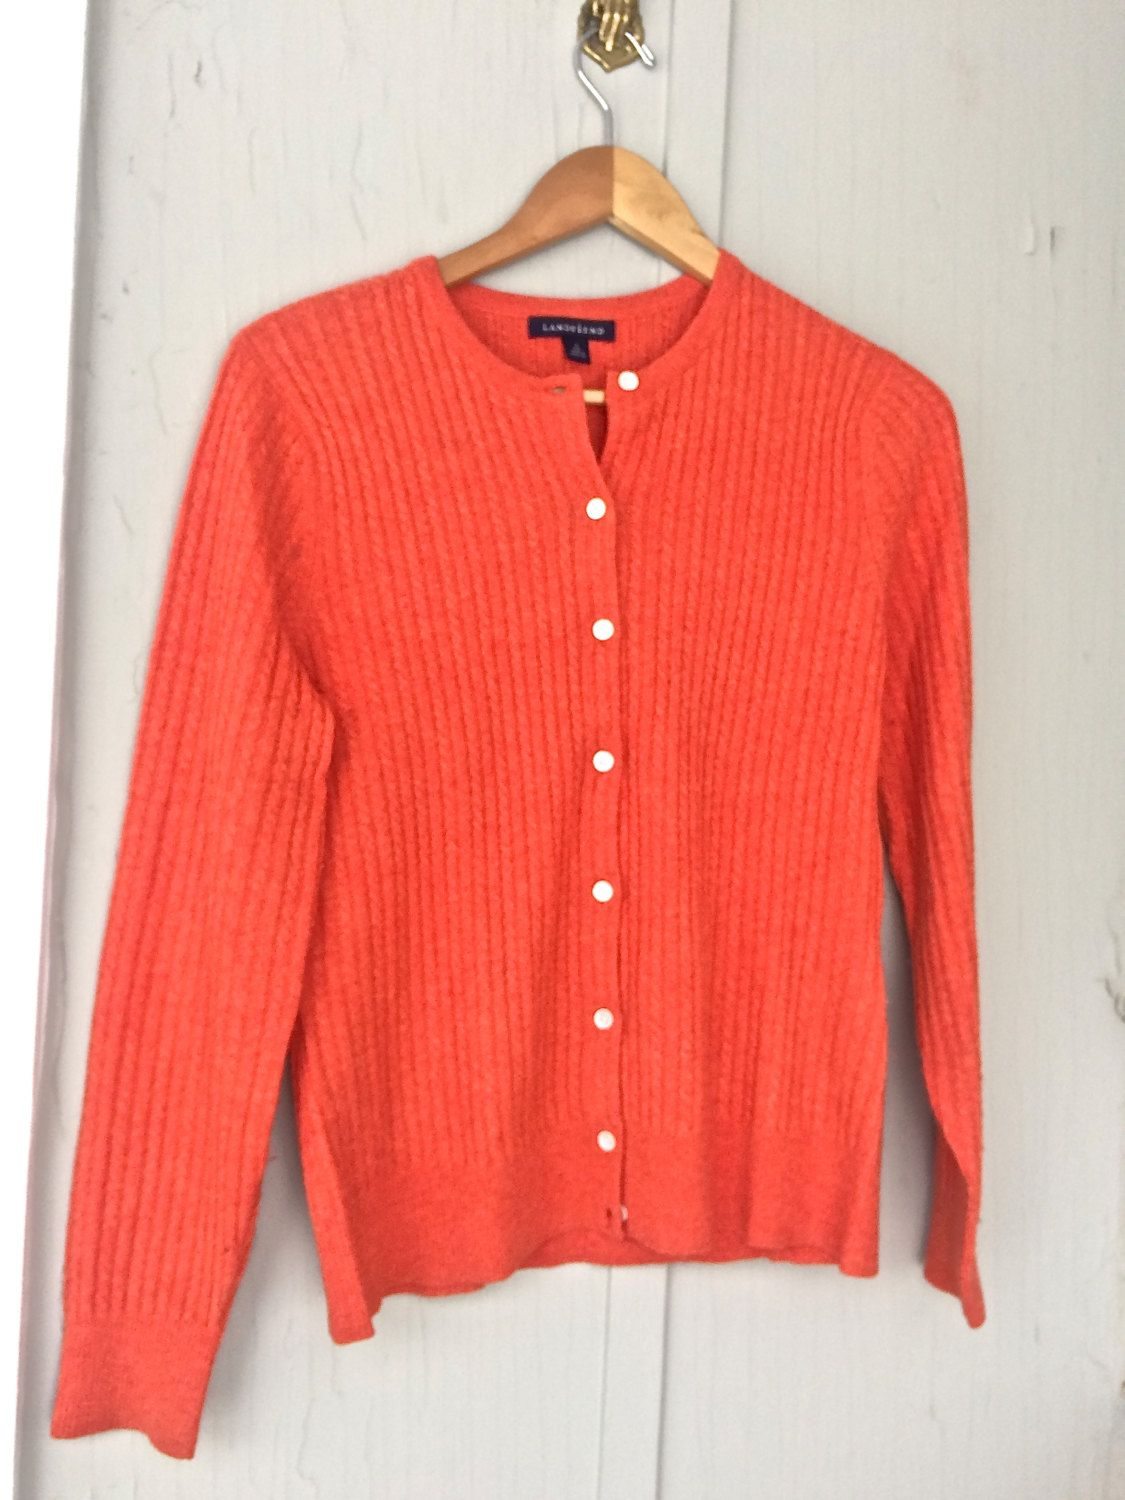 This warm and toasty orange cashmere crew neck cardigan is a great ...